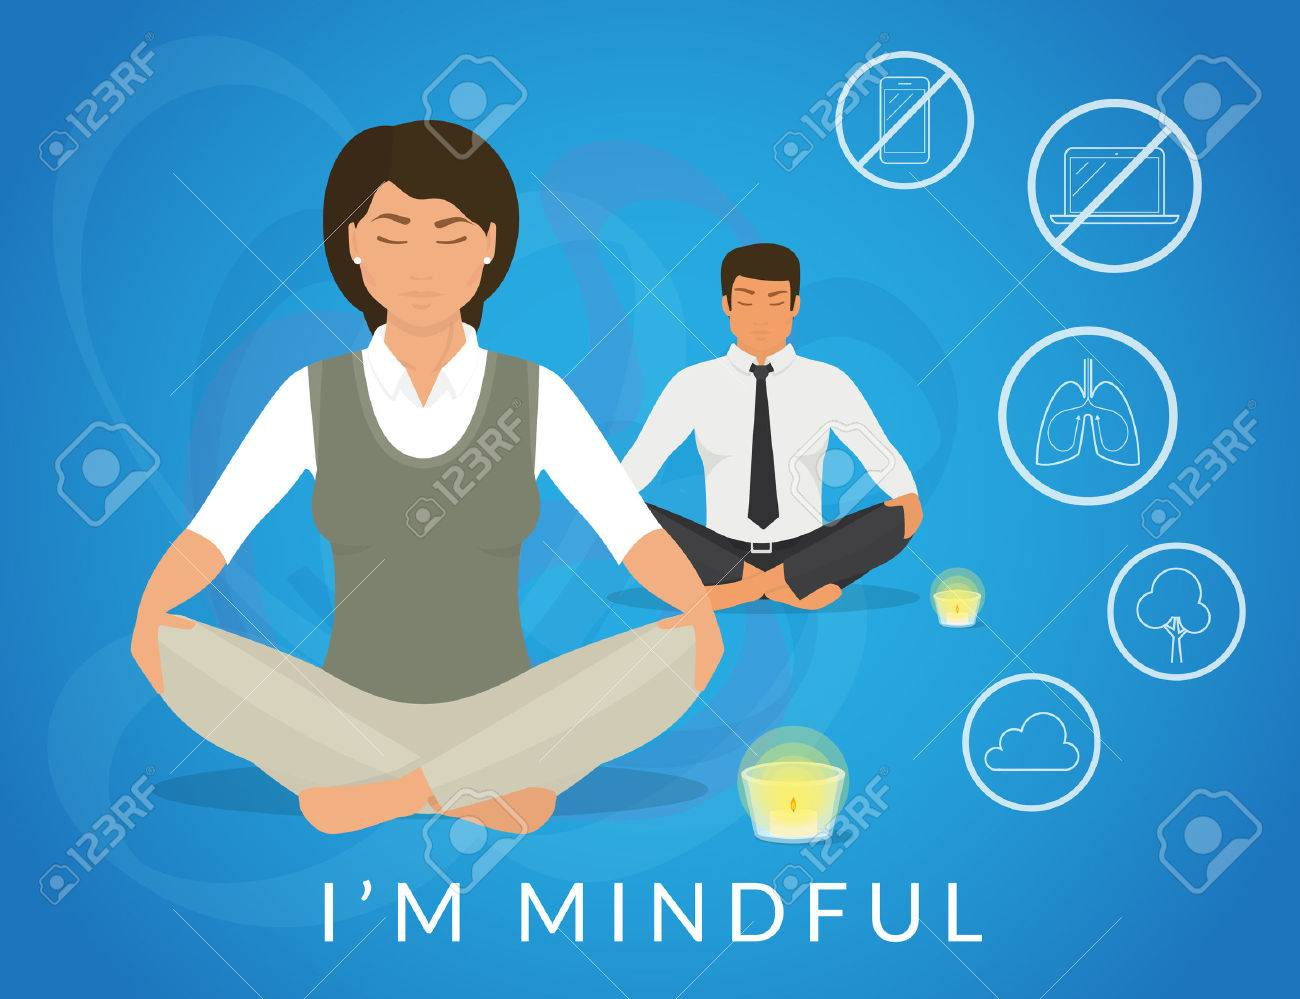 Office people sitting in calm lotus pose and relaxing looking at burning candle. Illistration of woman and man are meditating and thinking about mindfulness after hard working day - 56046477